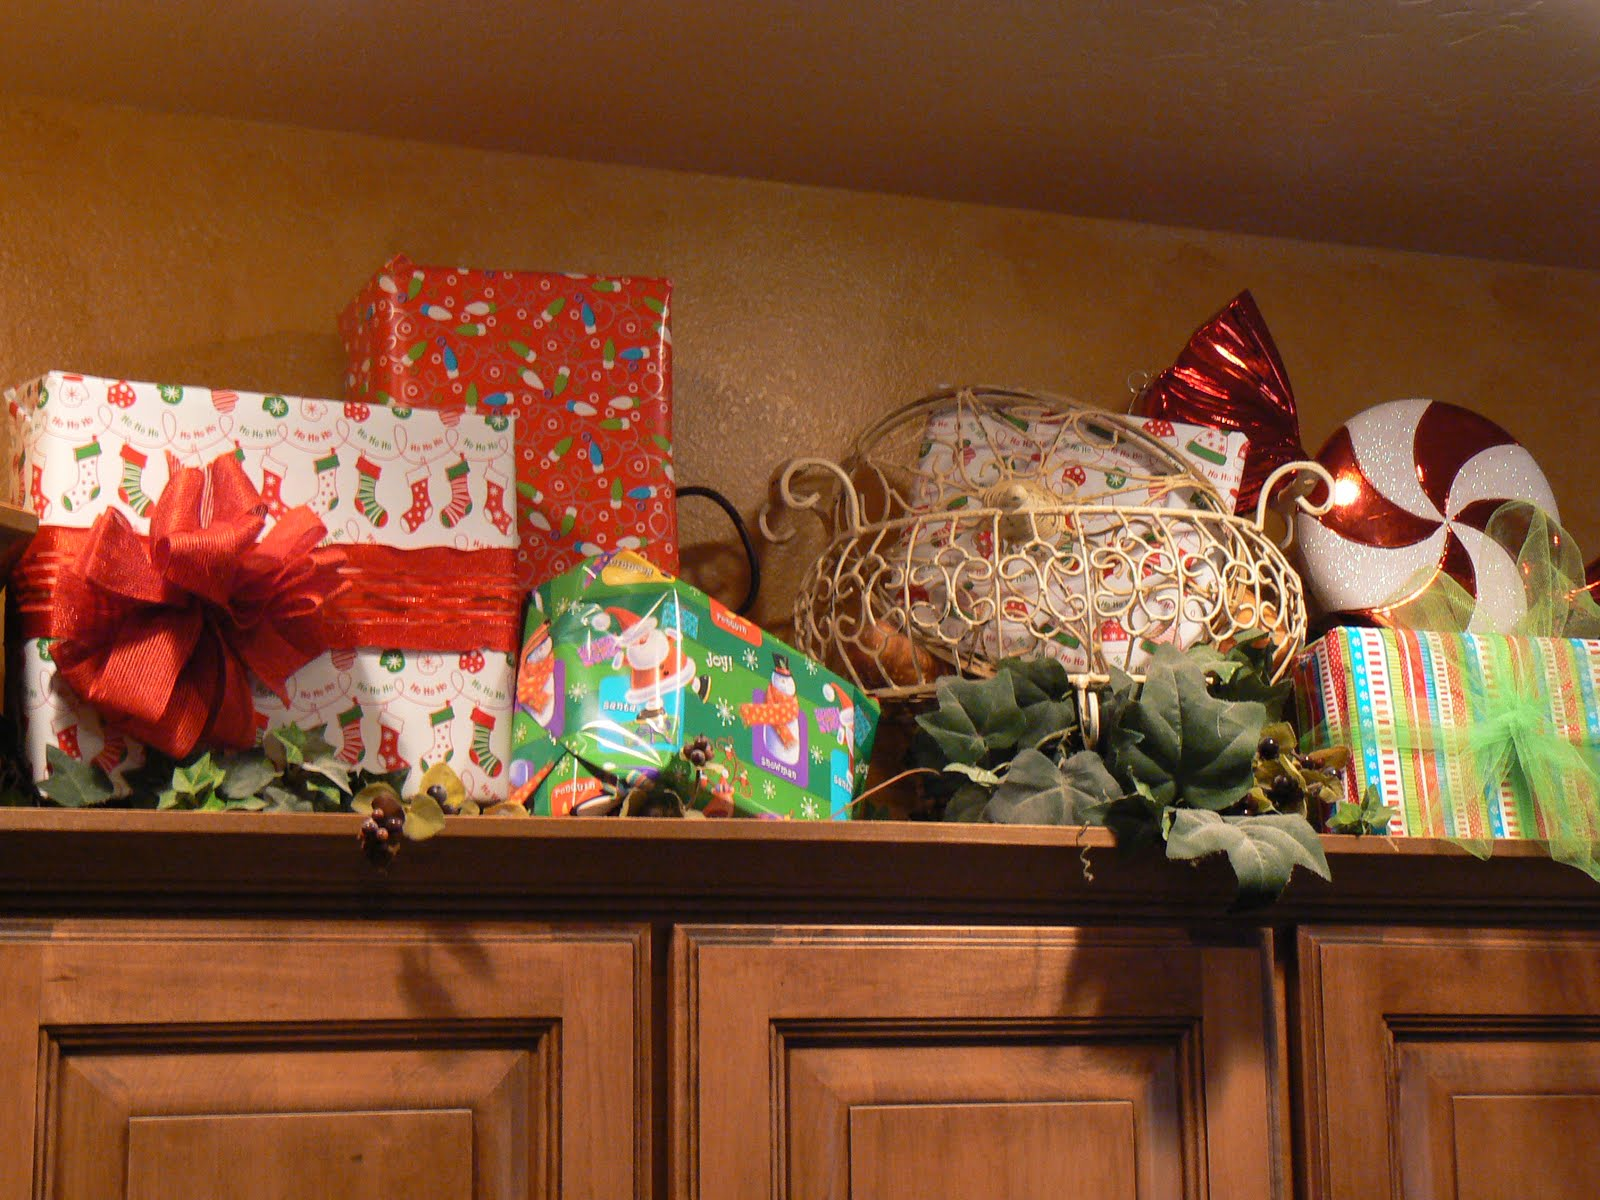 Decorating top of kitchen cabinets for christmas house How to decorate the top of your kitchen cabinets